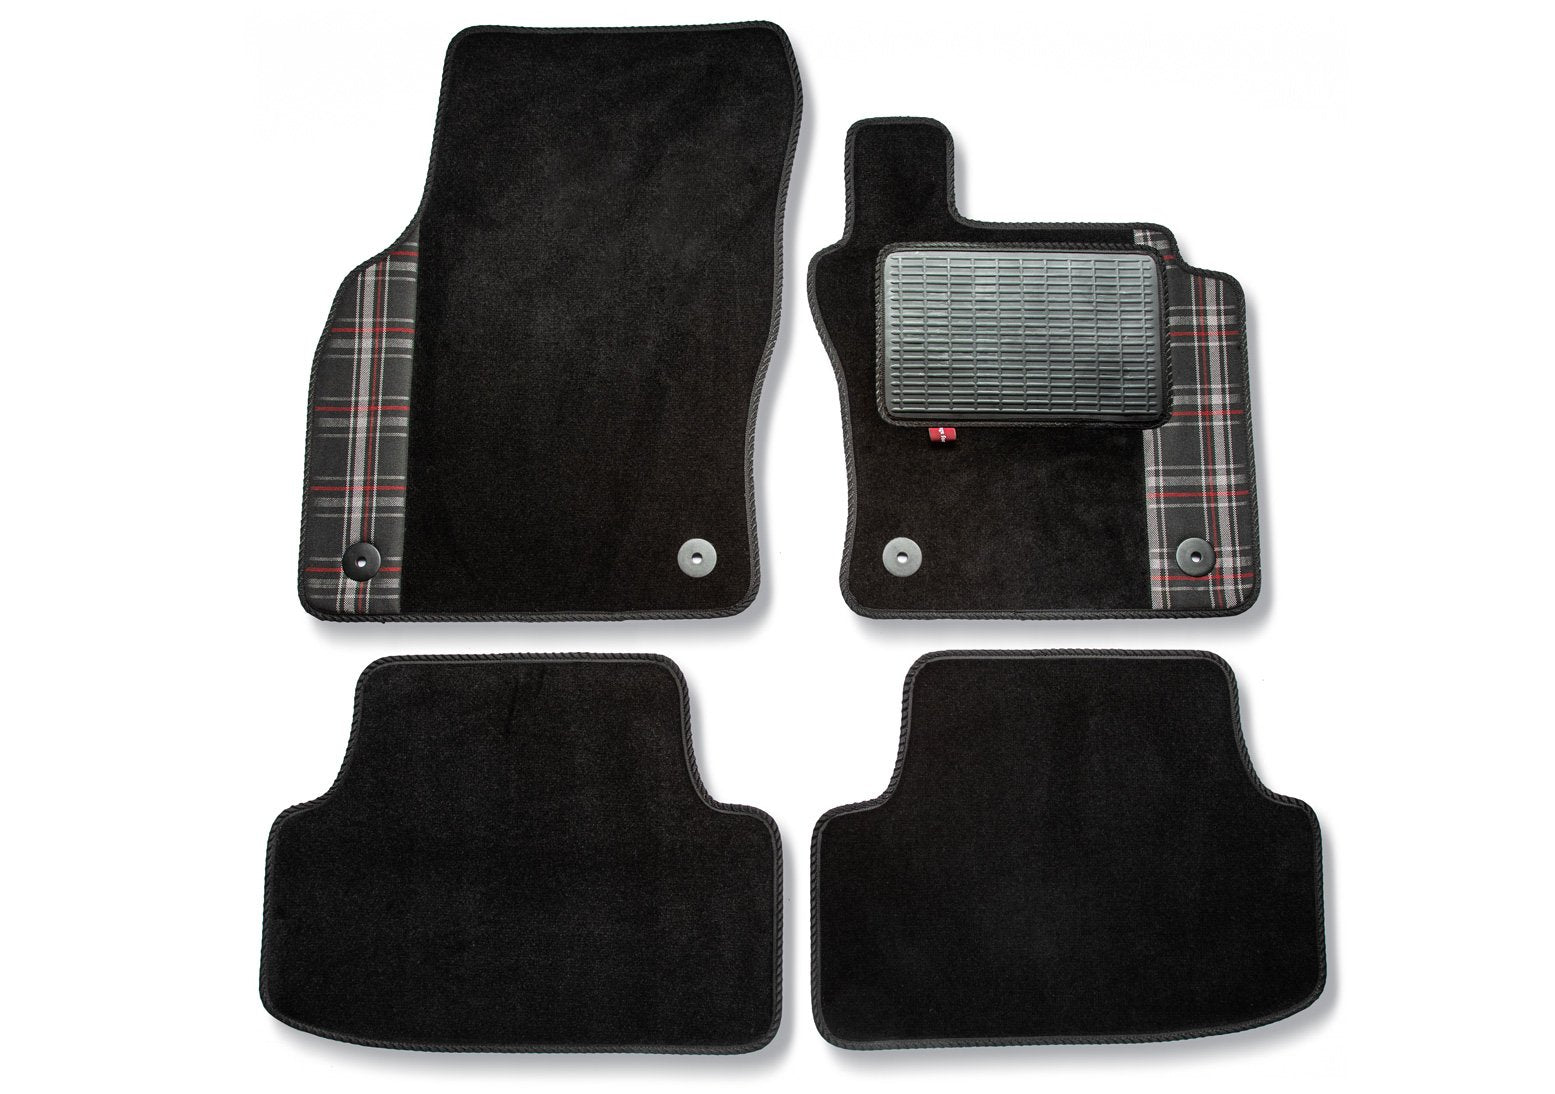 Golf Mark 7 over mat set shown in black automotive carpet with red GTI check fabric trim